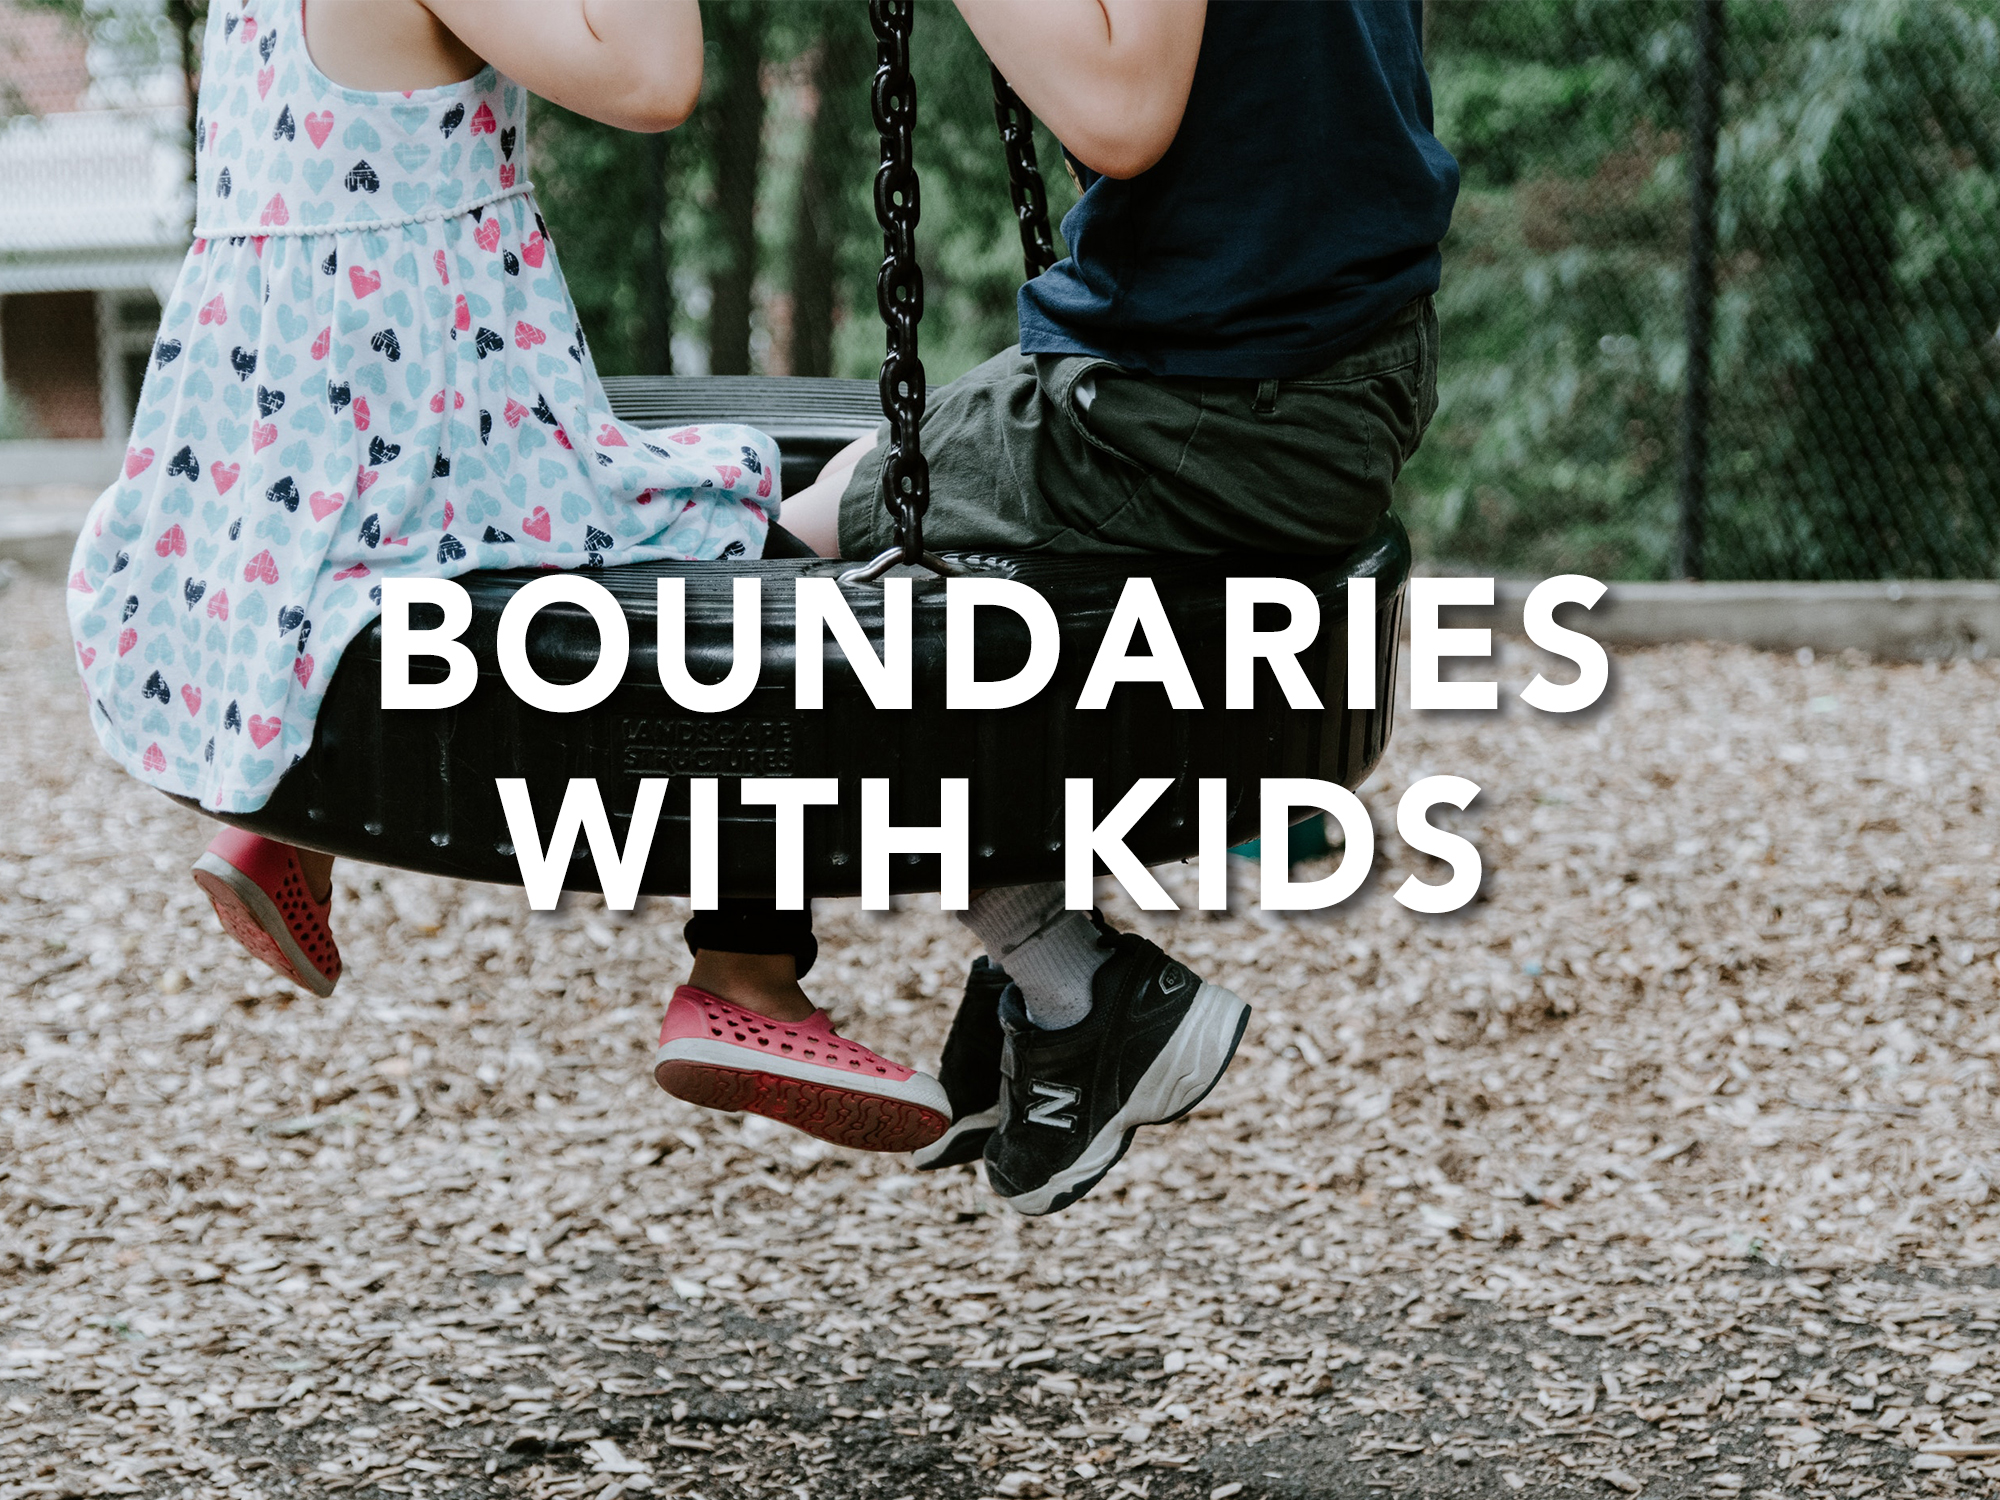 Click the graphic to register here for Boundaries with Kids.